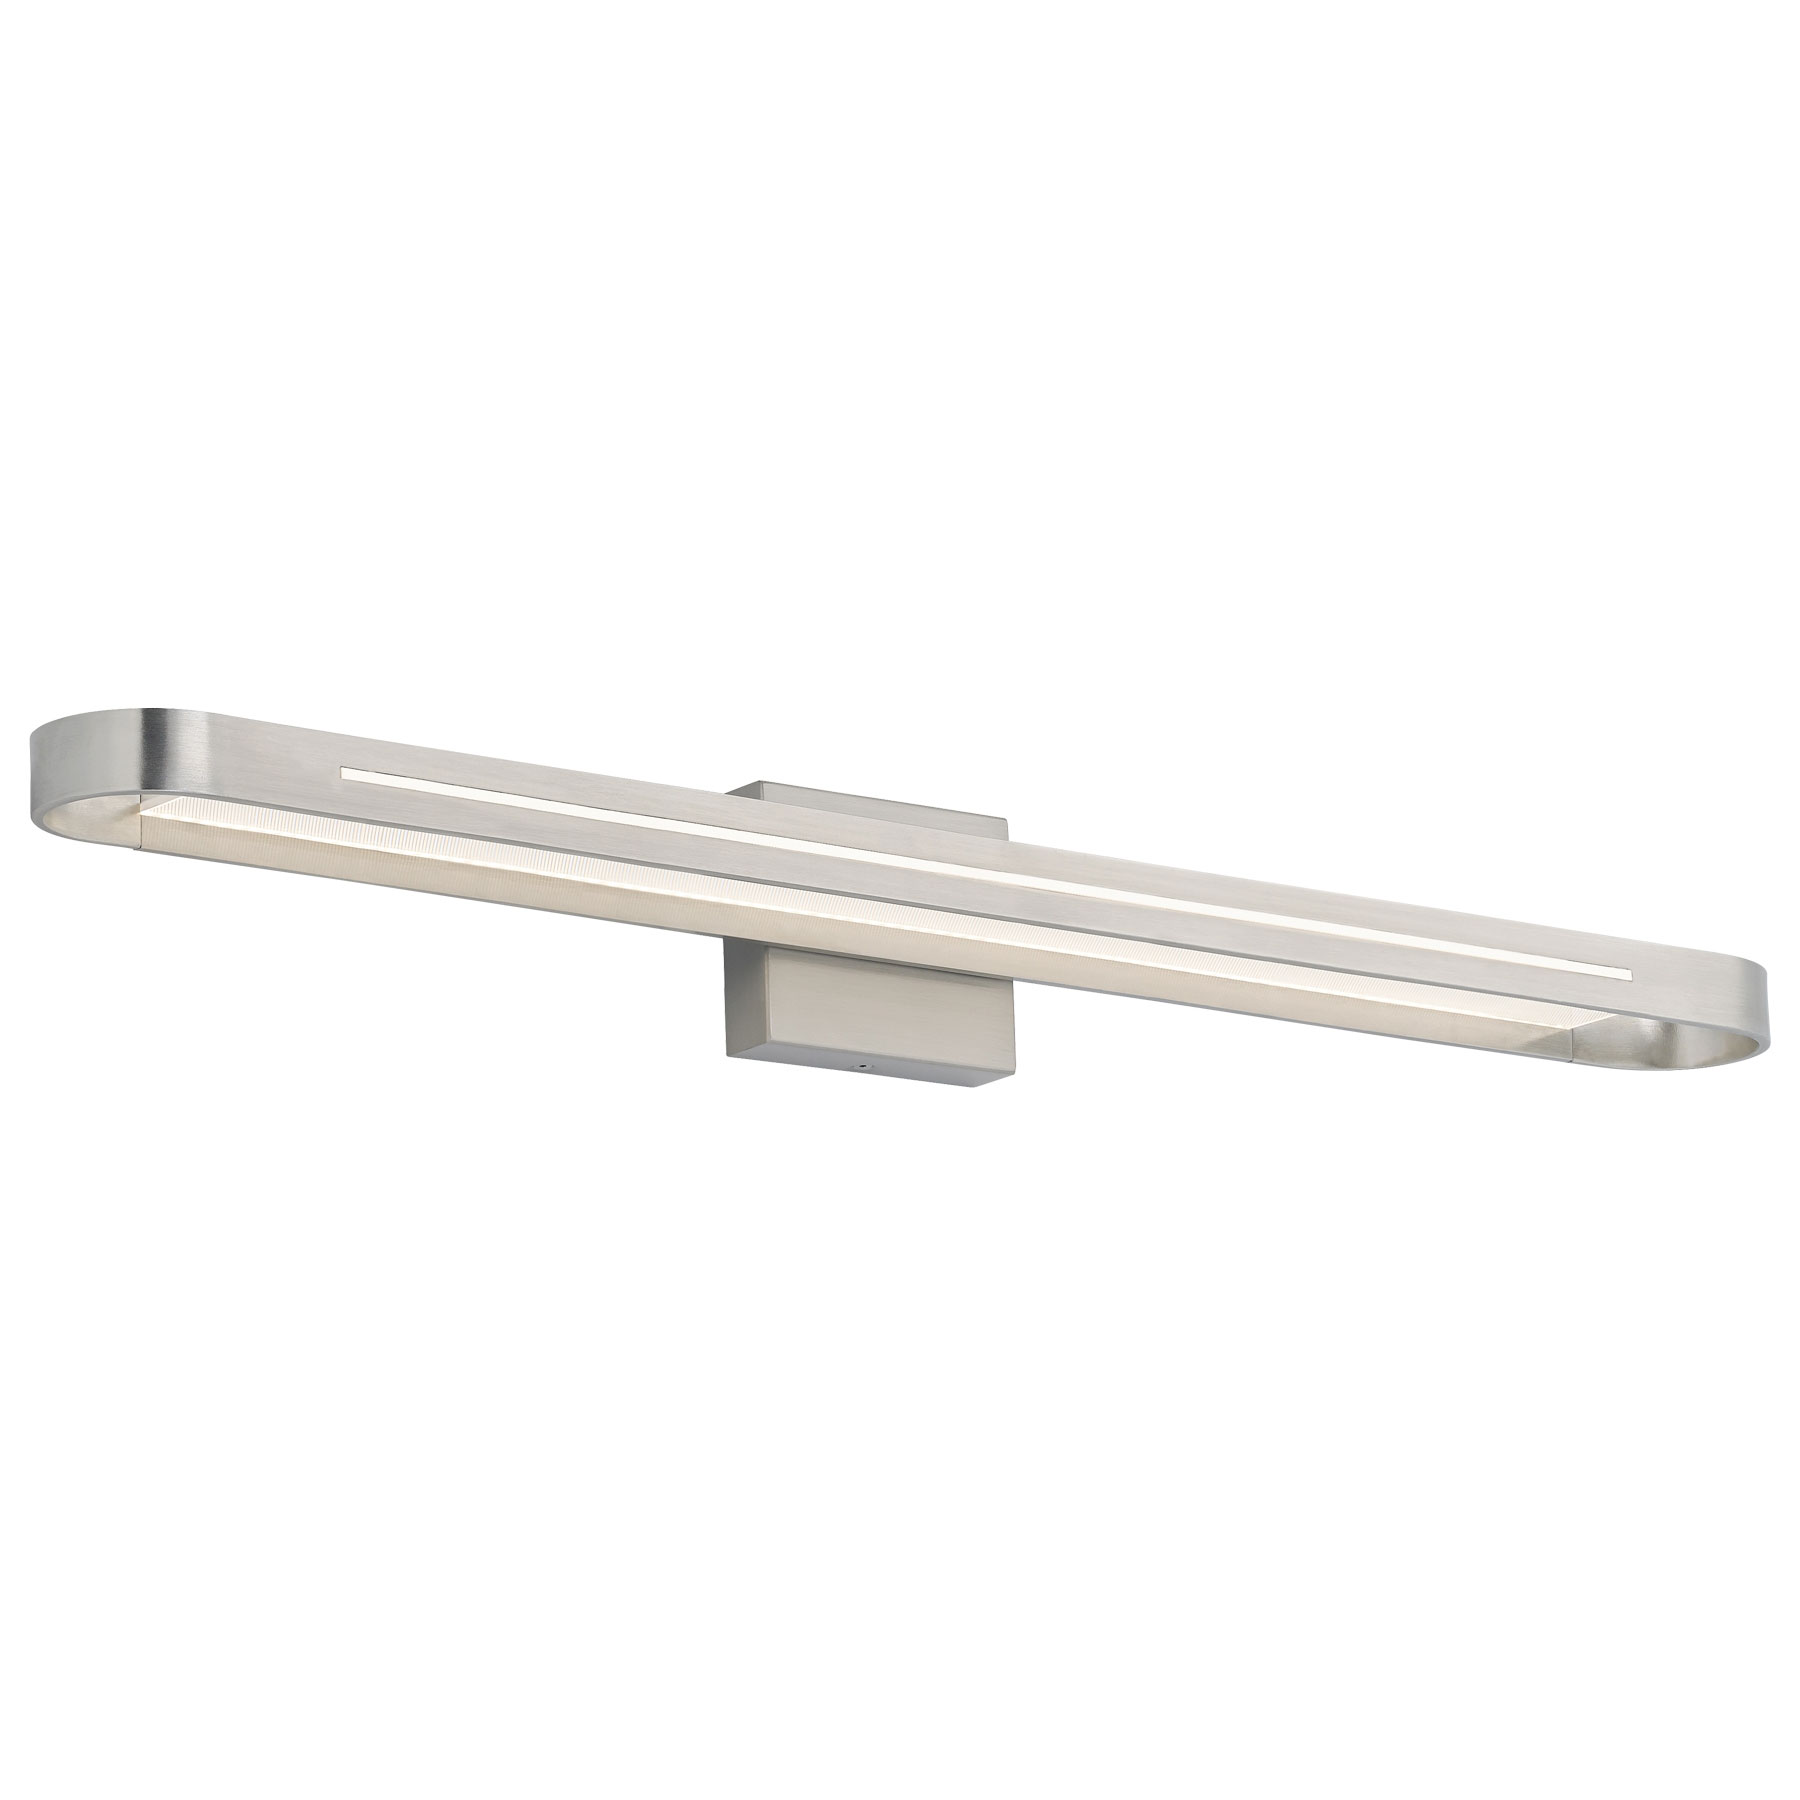 vertura bath bar by lbl lighting - Bathroom Light Bar